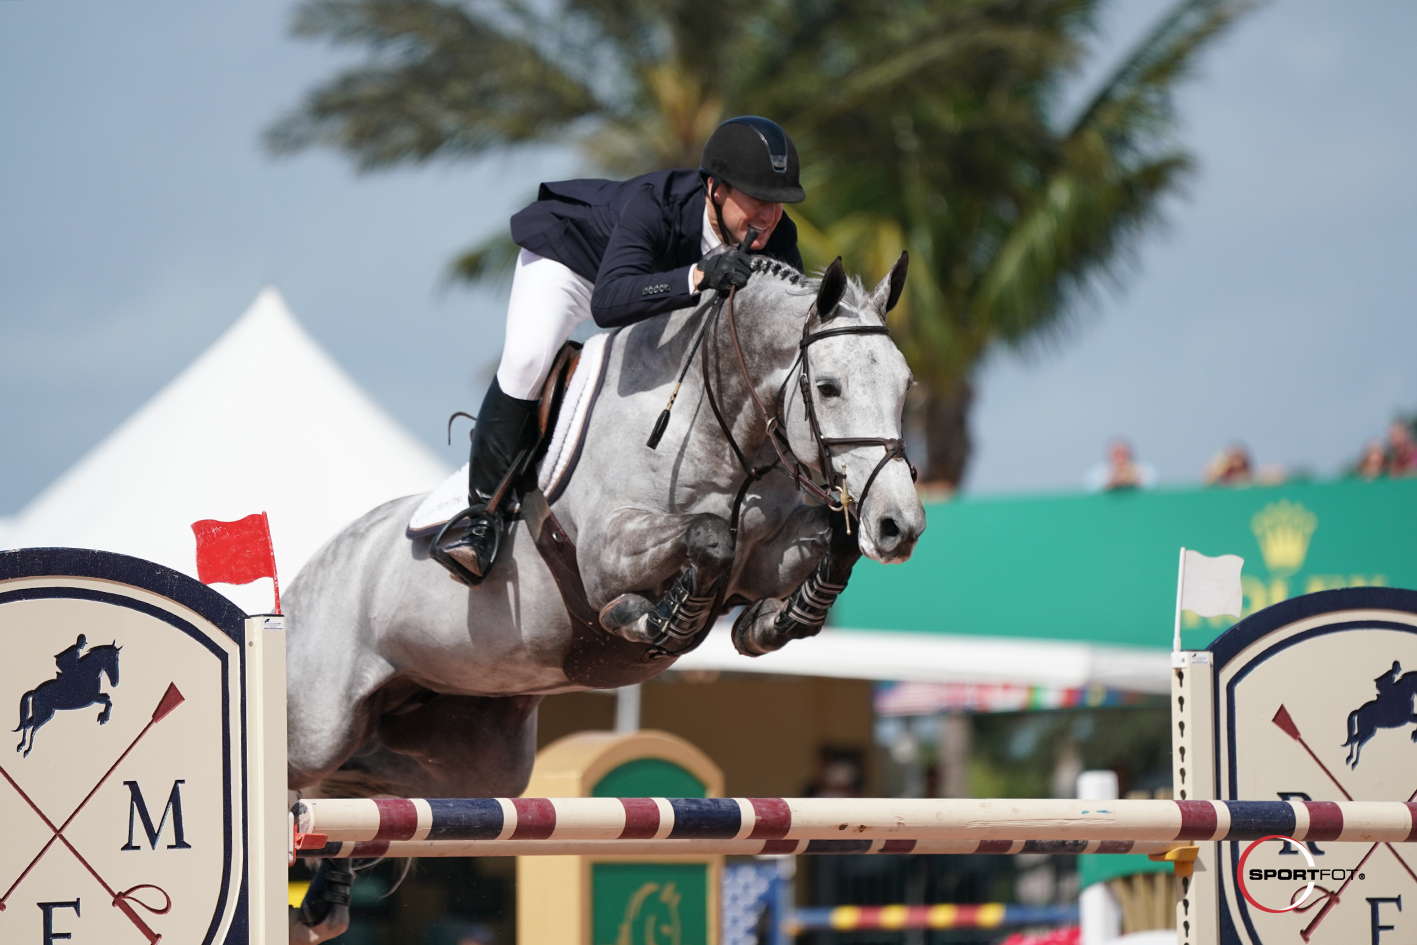 McLain Ward and Bellefleur PS Z 150 306_6928 Sportfot